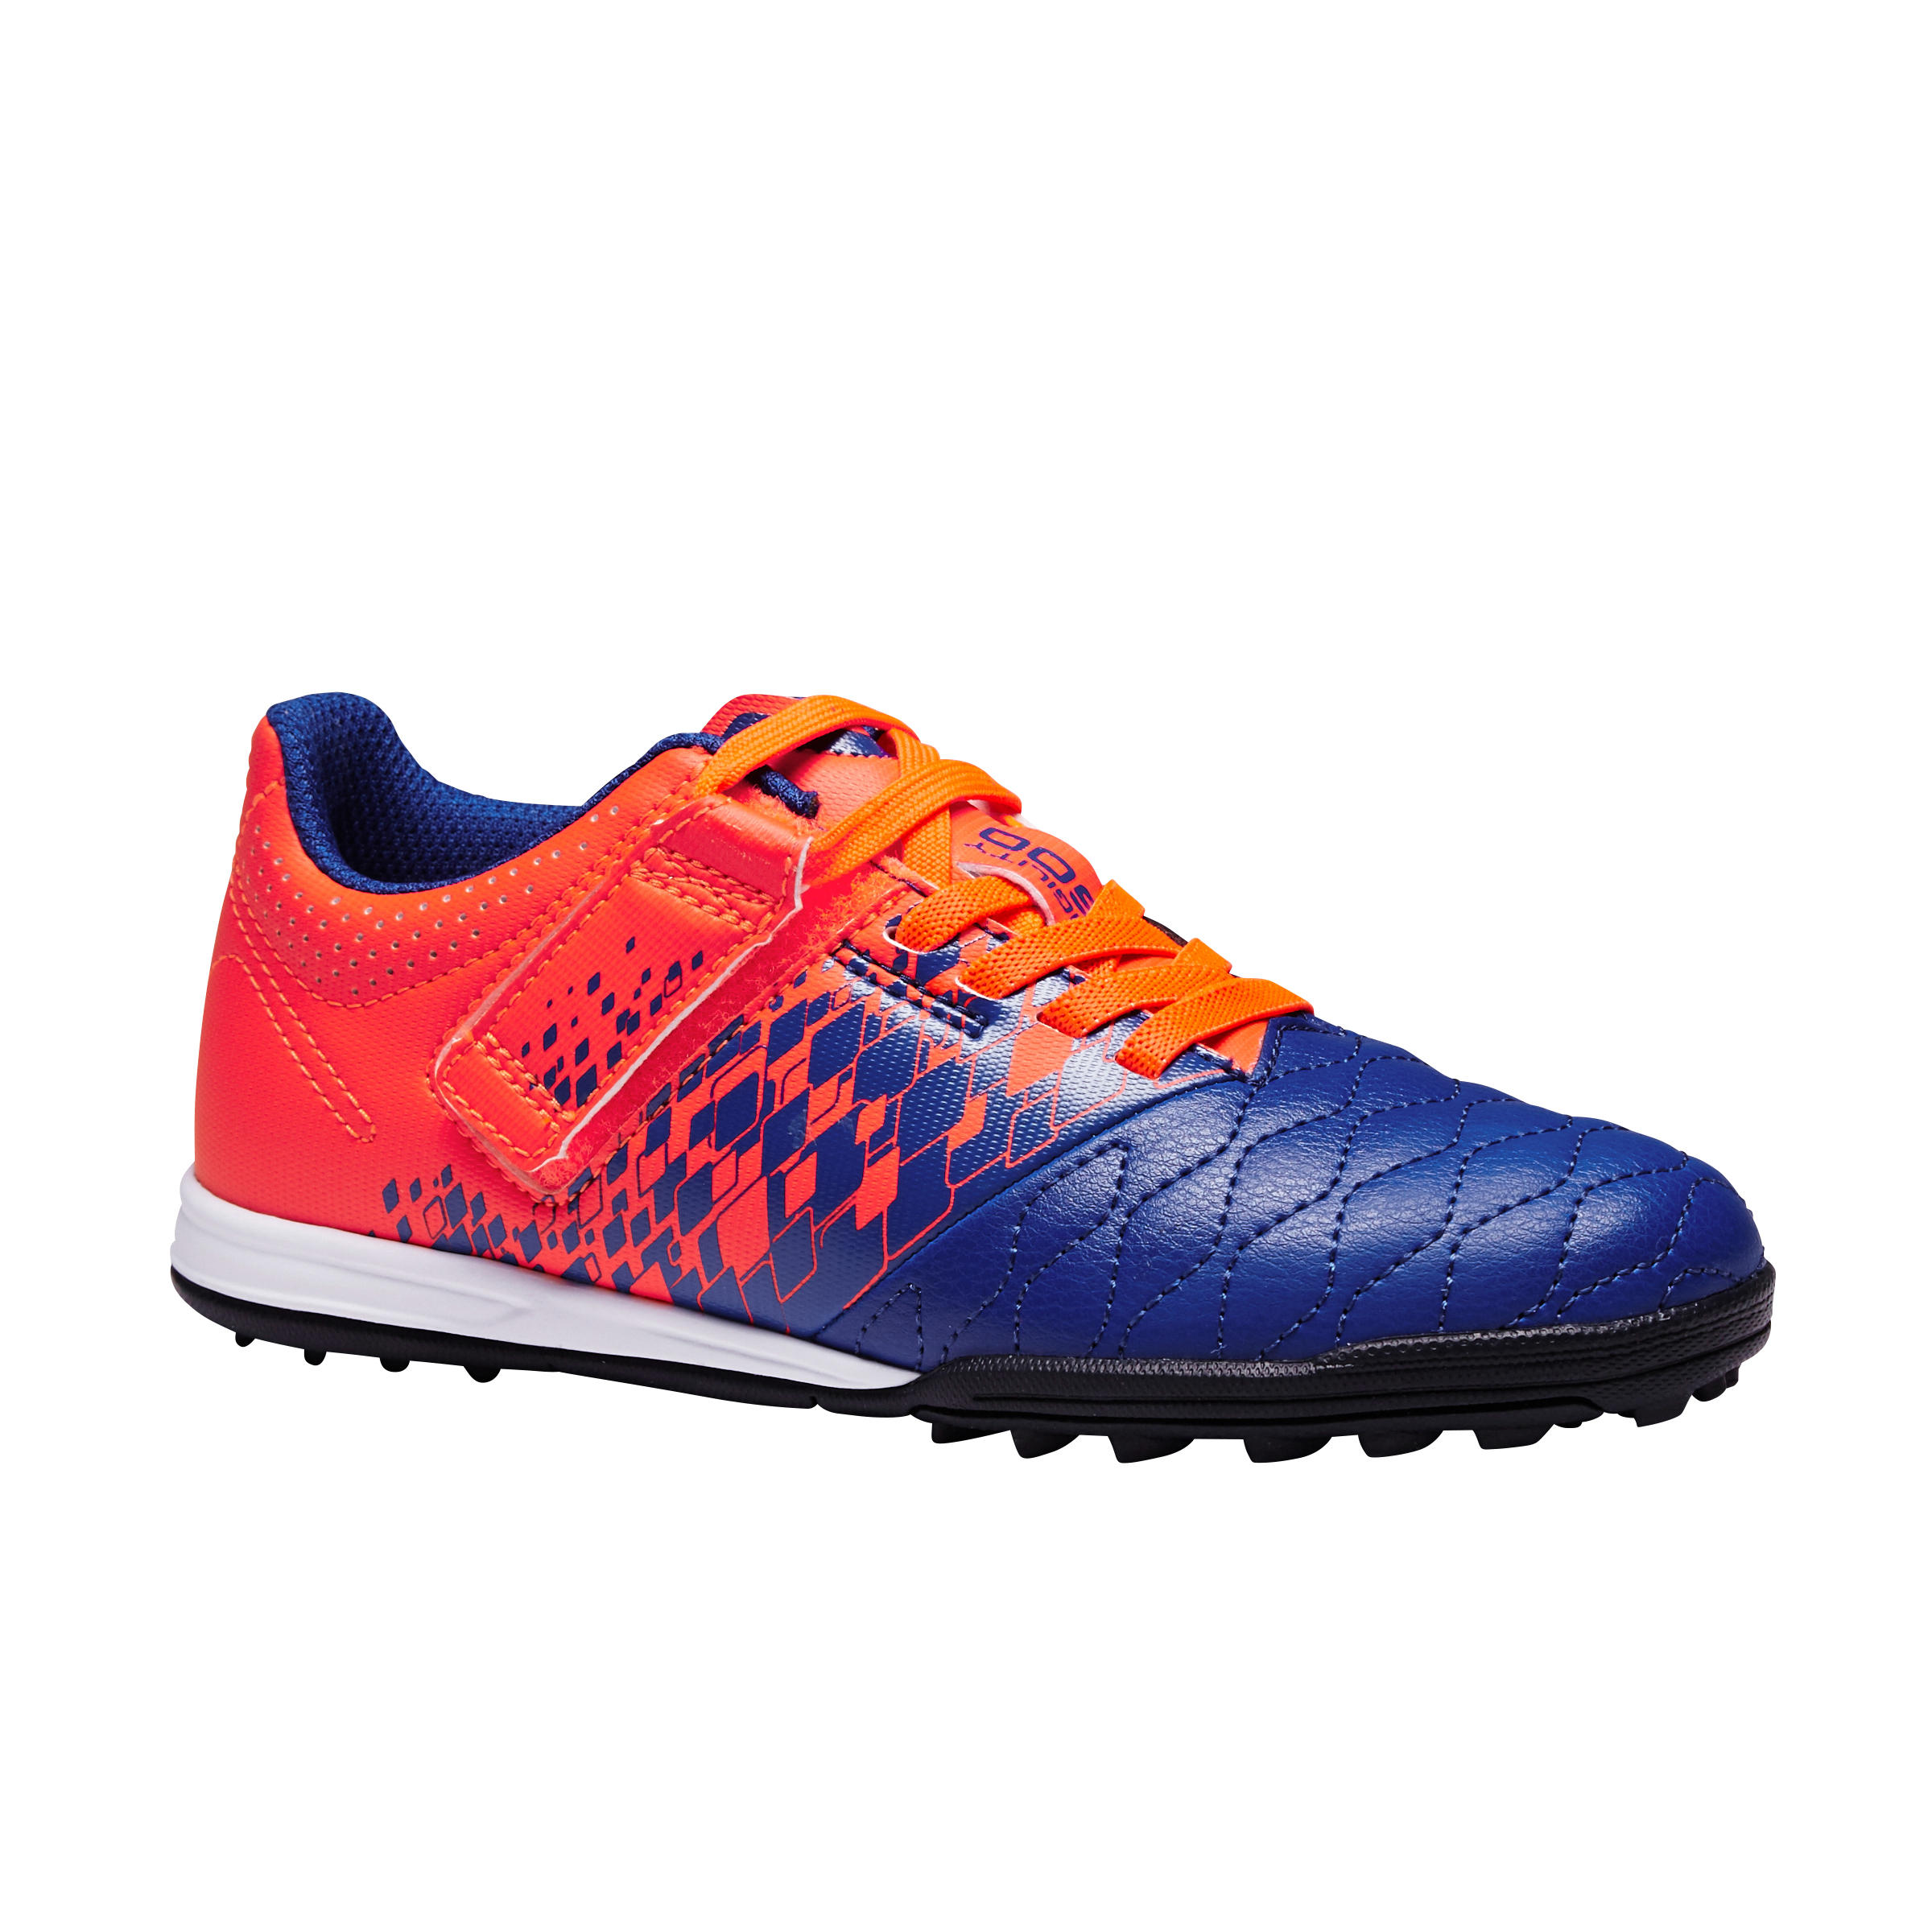 Chaussure de football enfant terrain dur Agility 500 HG scratch bleu orange